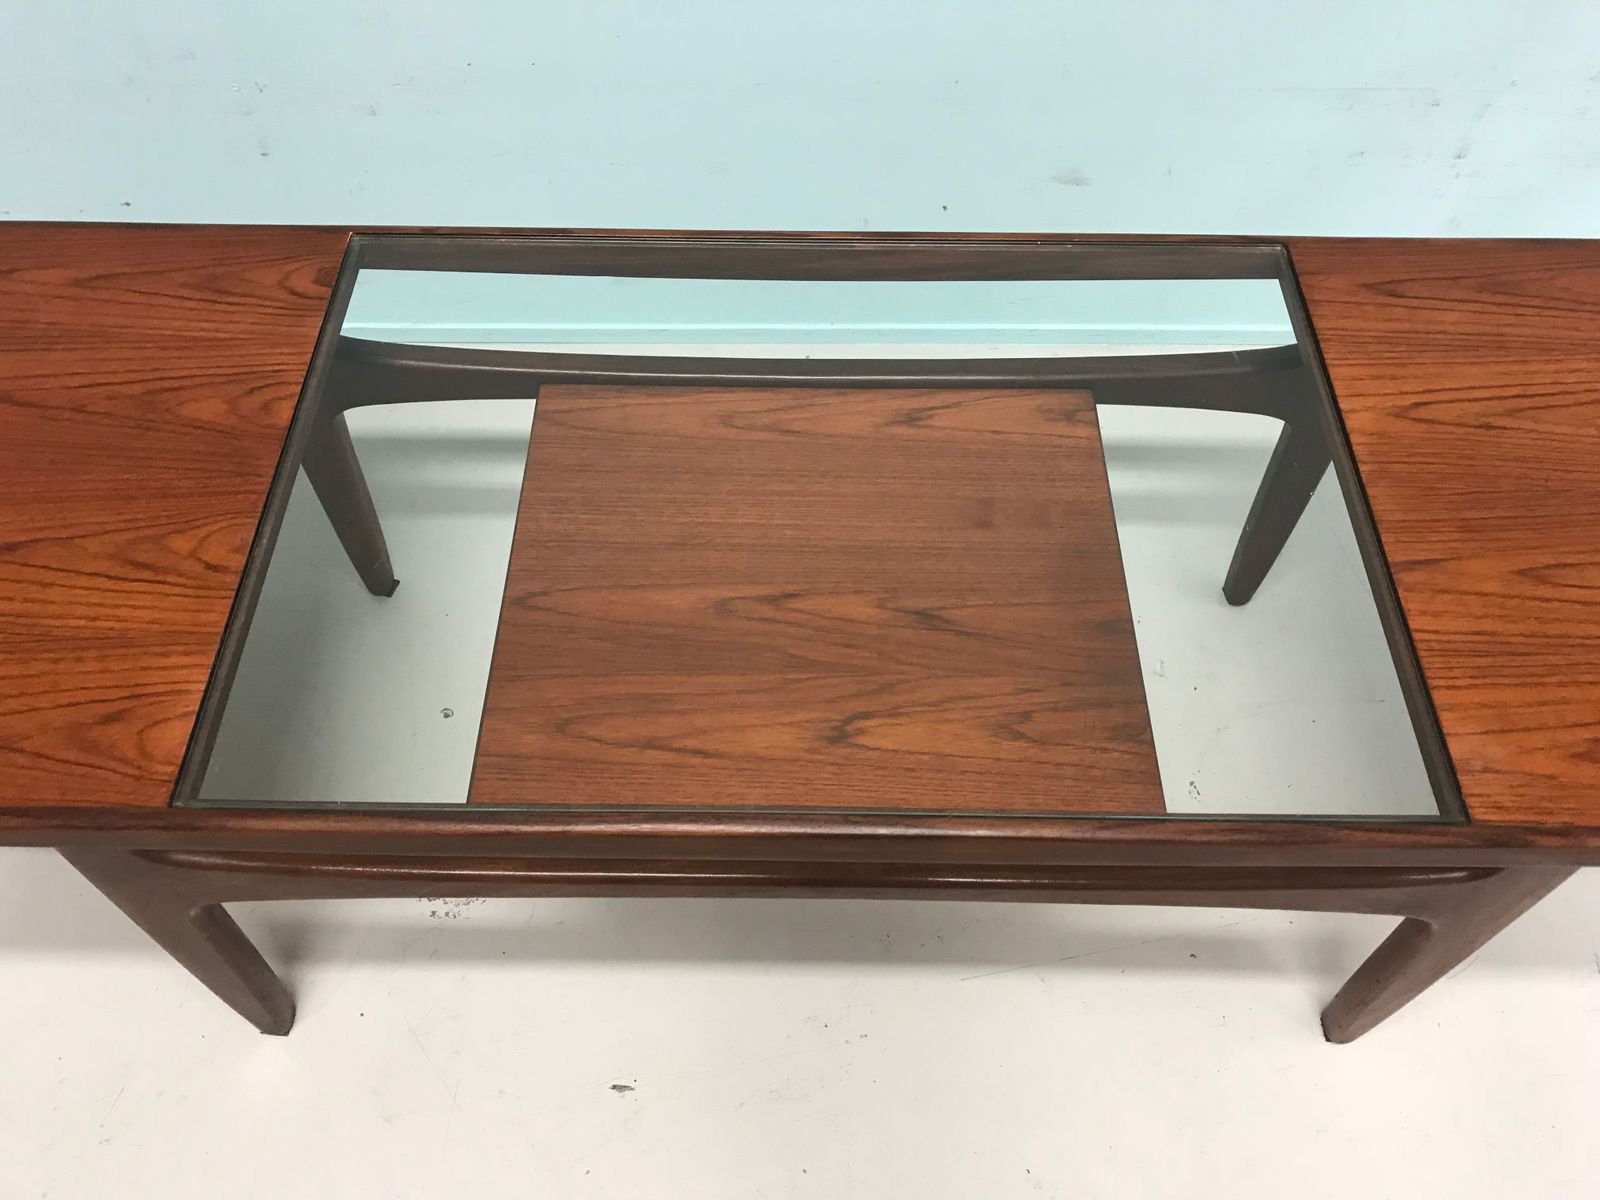 Mid century modern teak coffee table from g plan for sale at pamono Modern teak coffee table